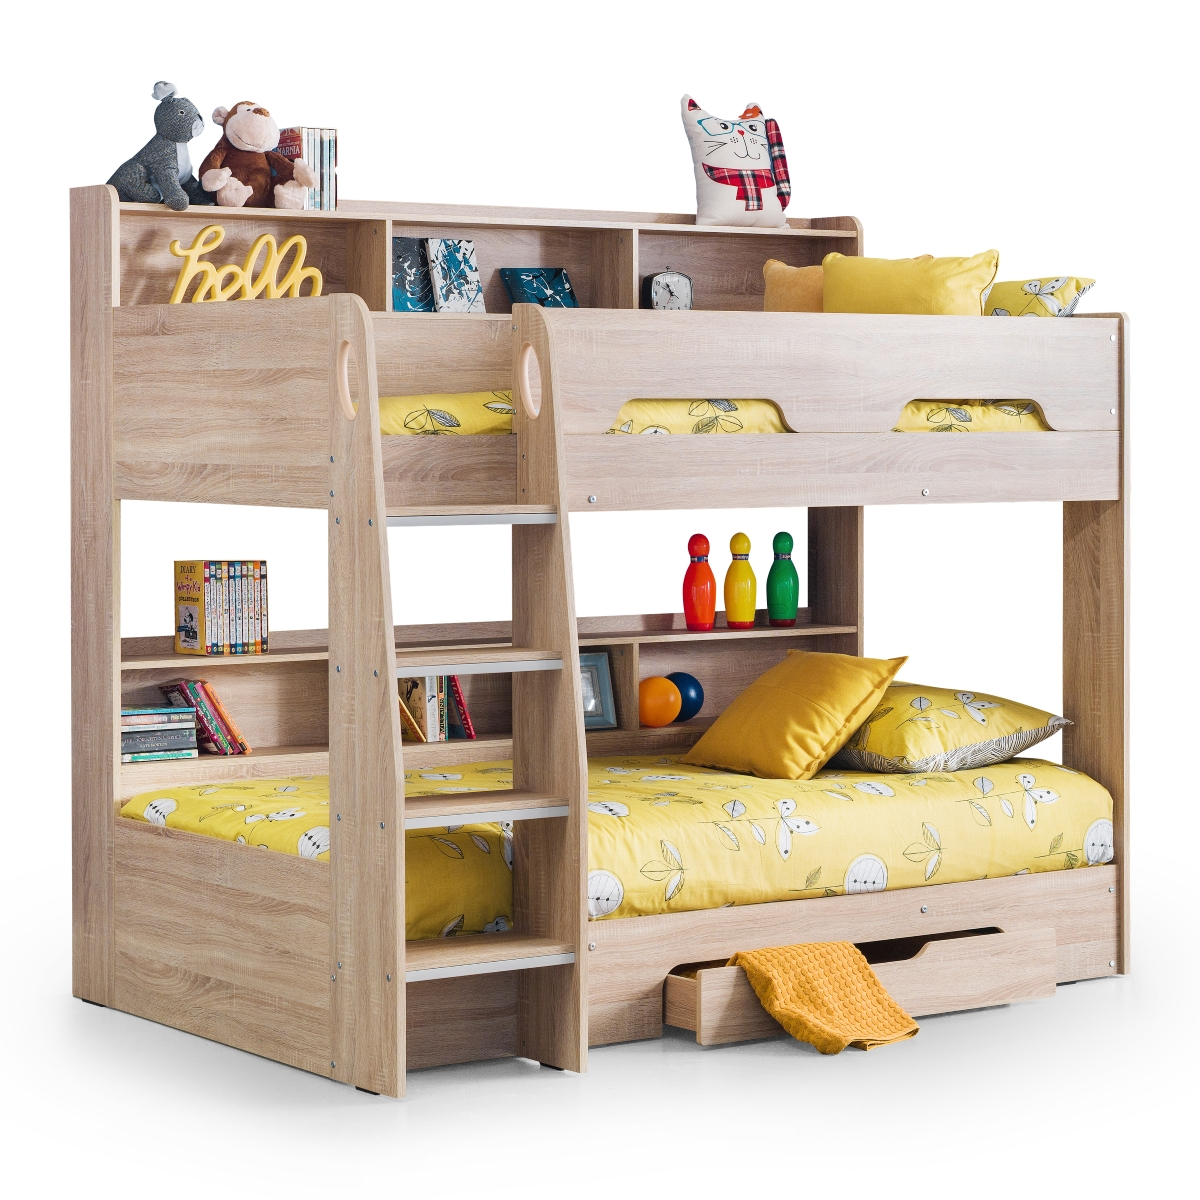 Bunk Beds For Kids Bunk Beds Orion Bunk Bed Julian Bowen Ori001